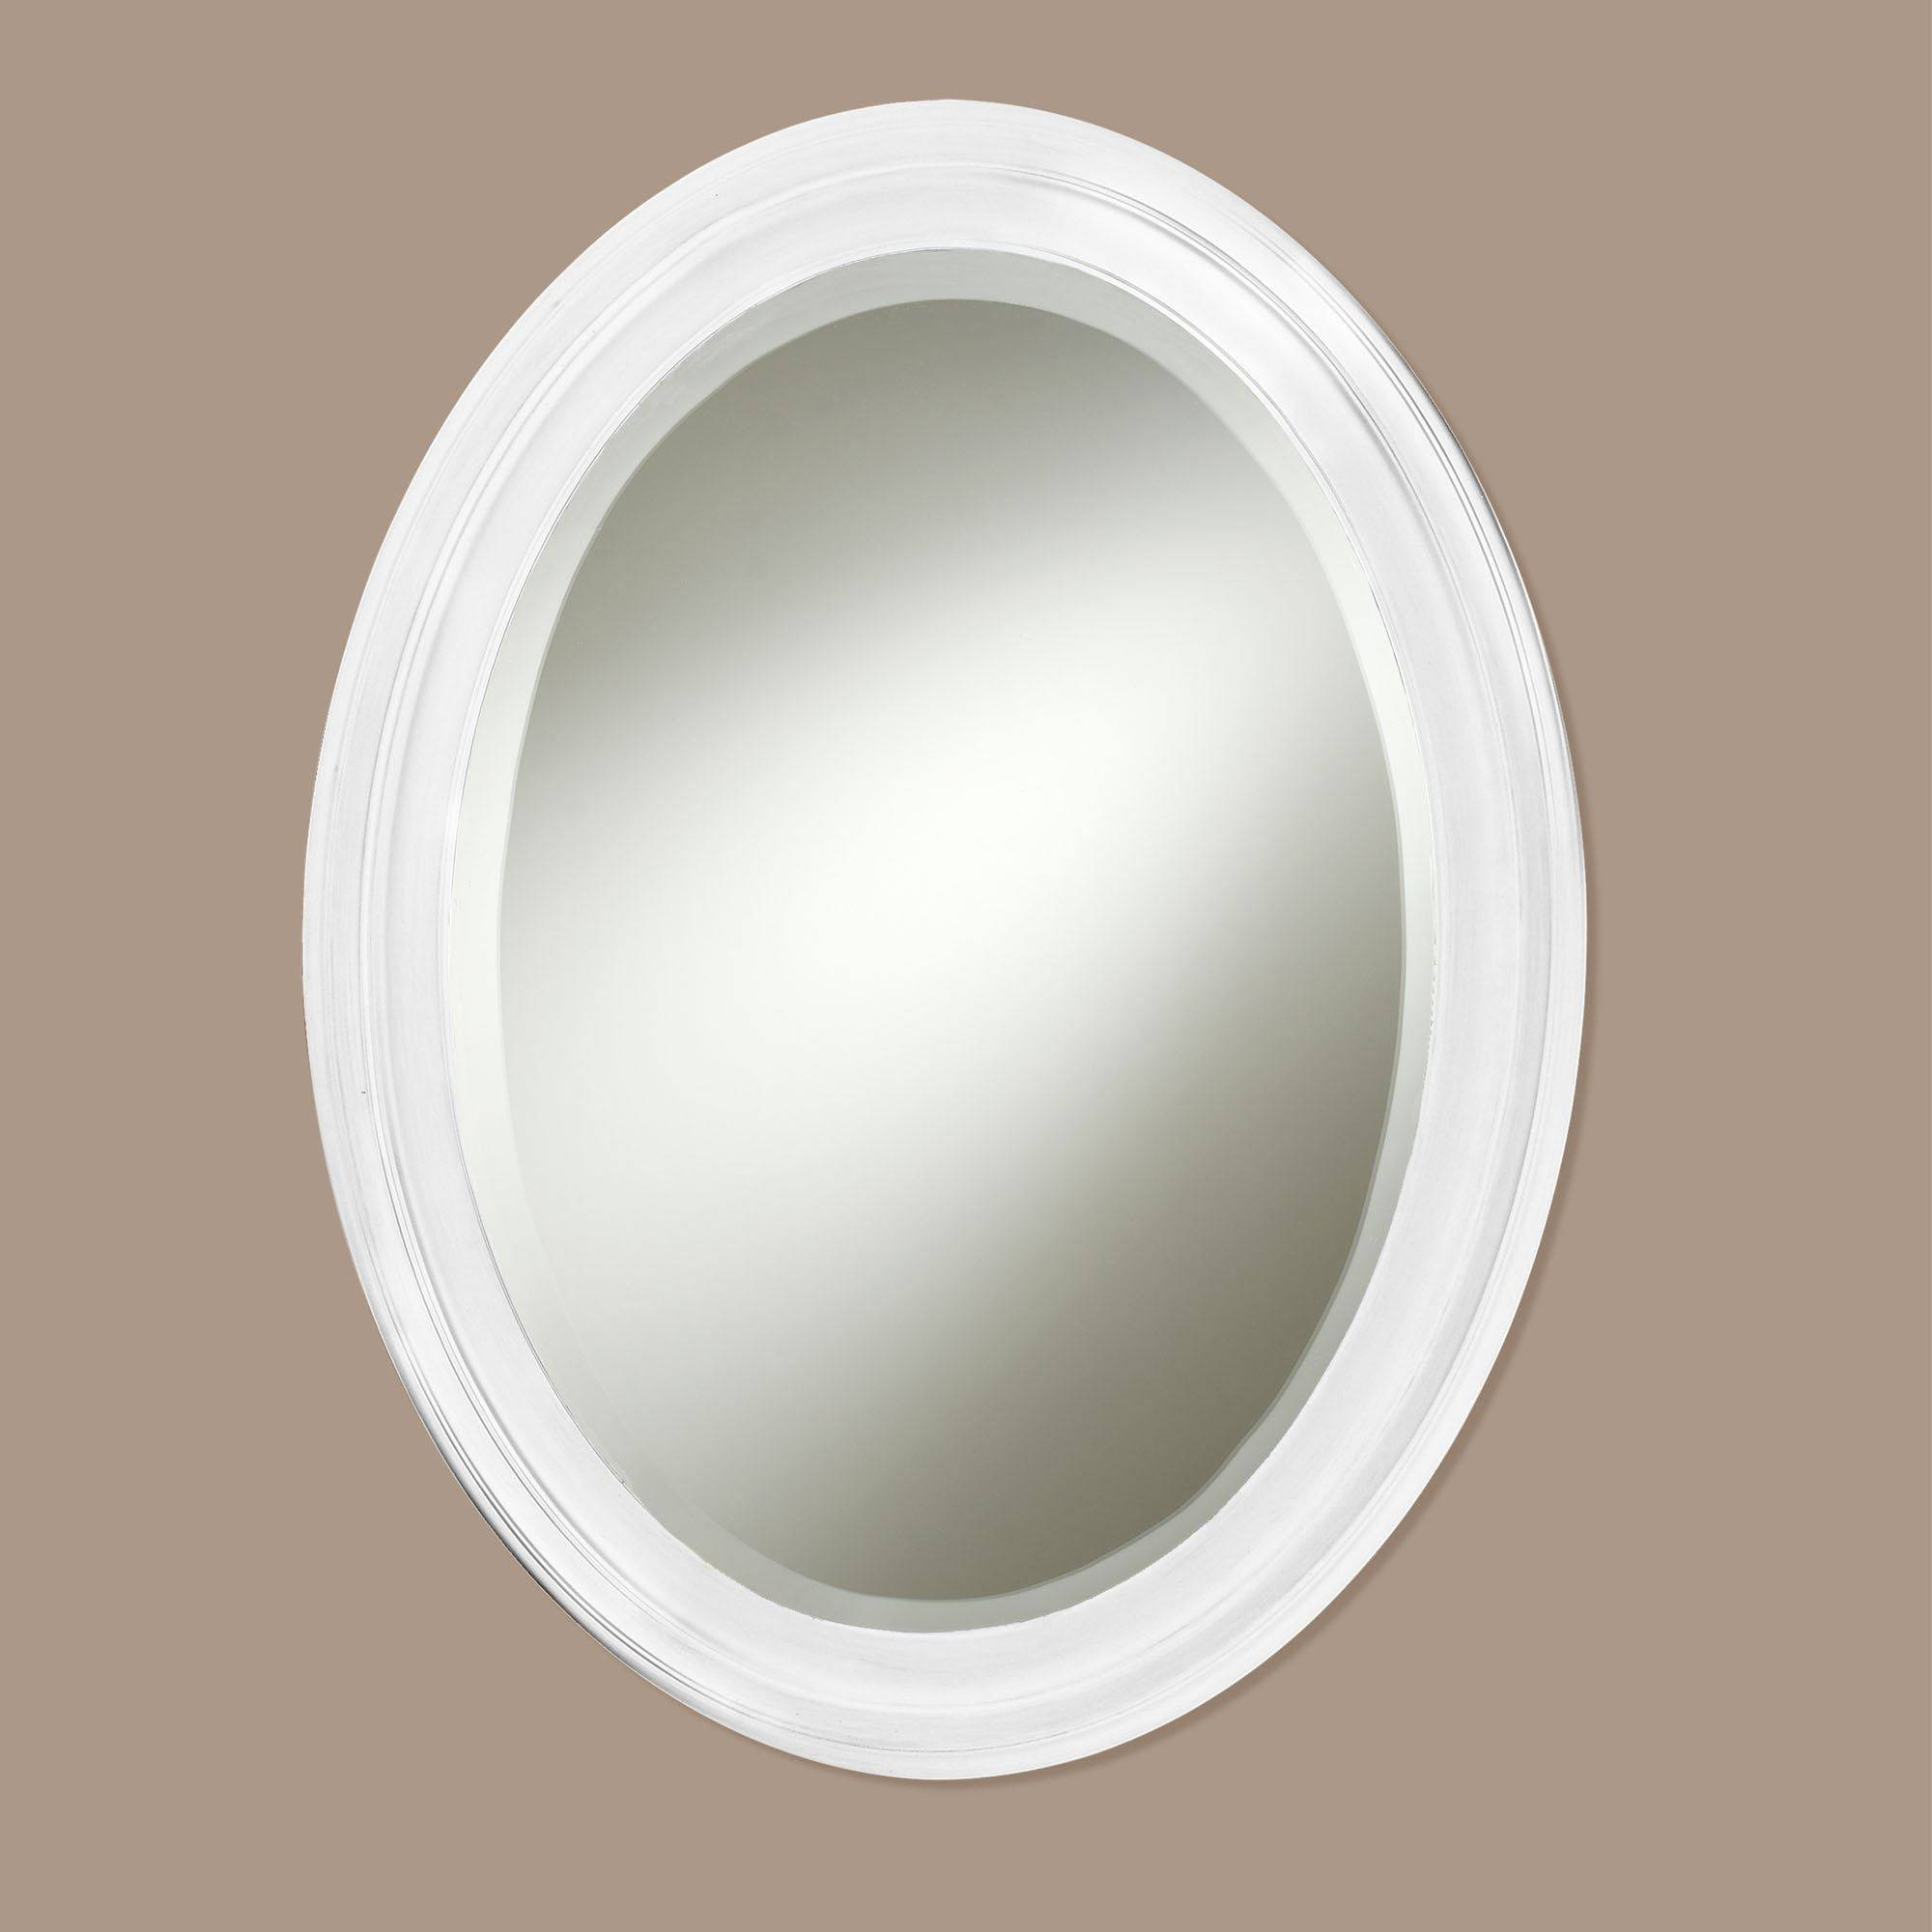 Black Oval Mirrors For Bathroom. Https Www Etsy Com Listing with regard to Black Oval Wall Mirrors (Image 4 of 25)